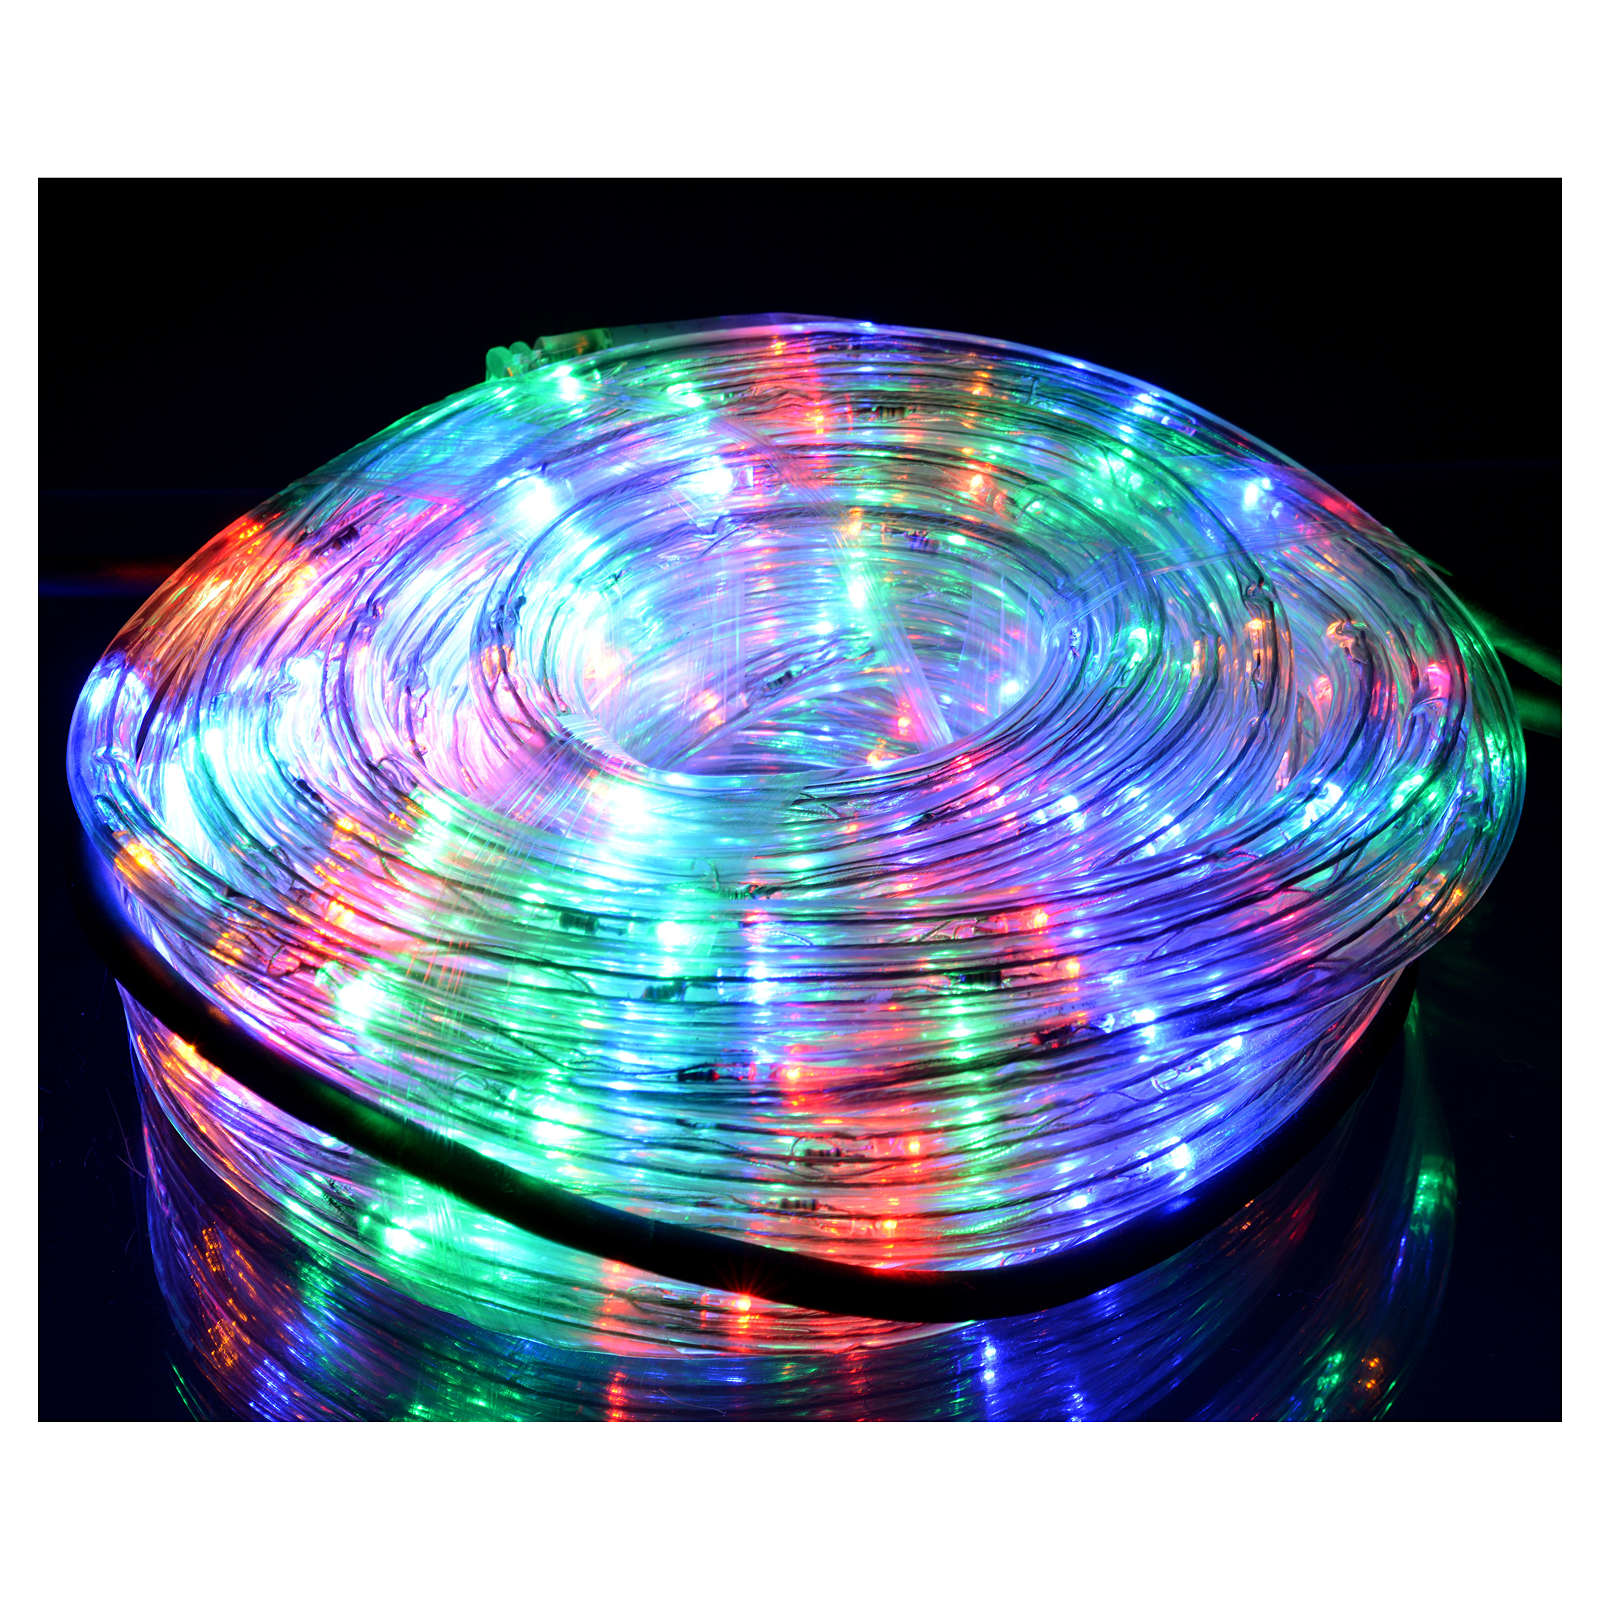 Éclairage Noël tube led 15 m multicolore programmable int/ext 3